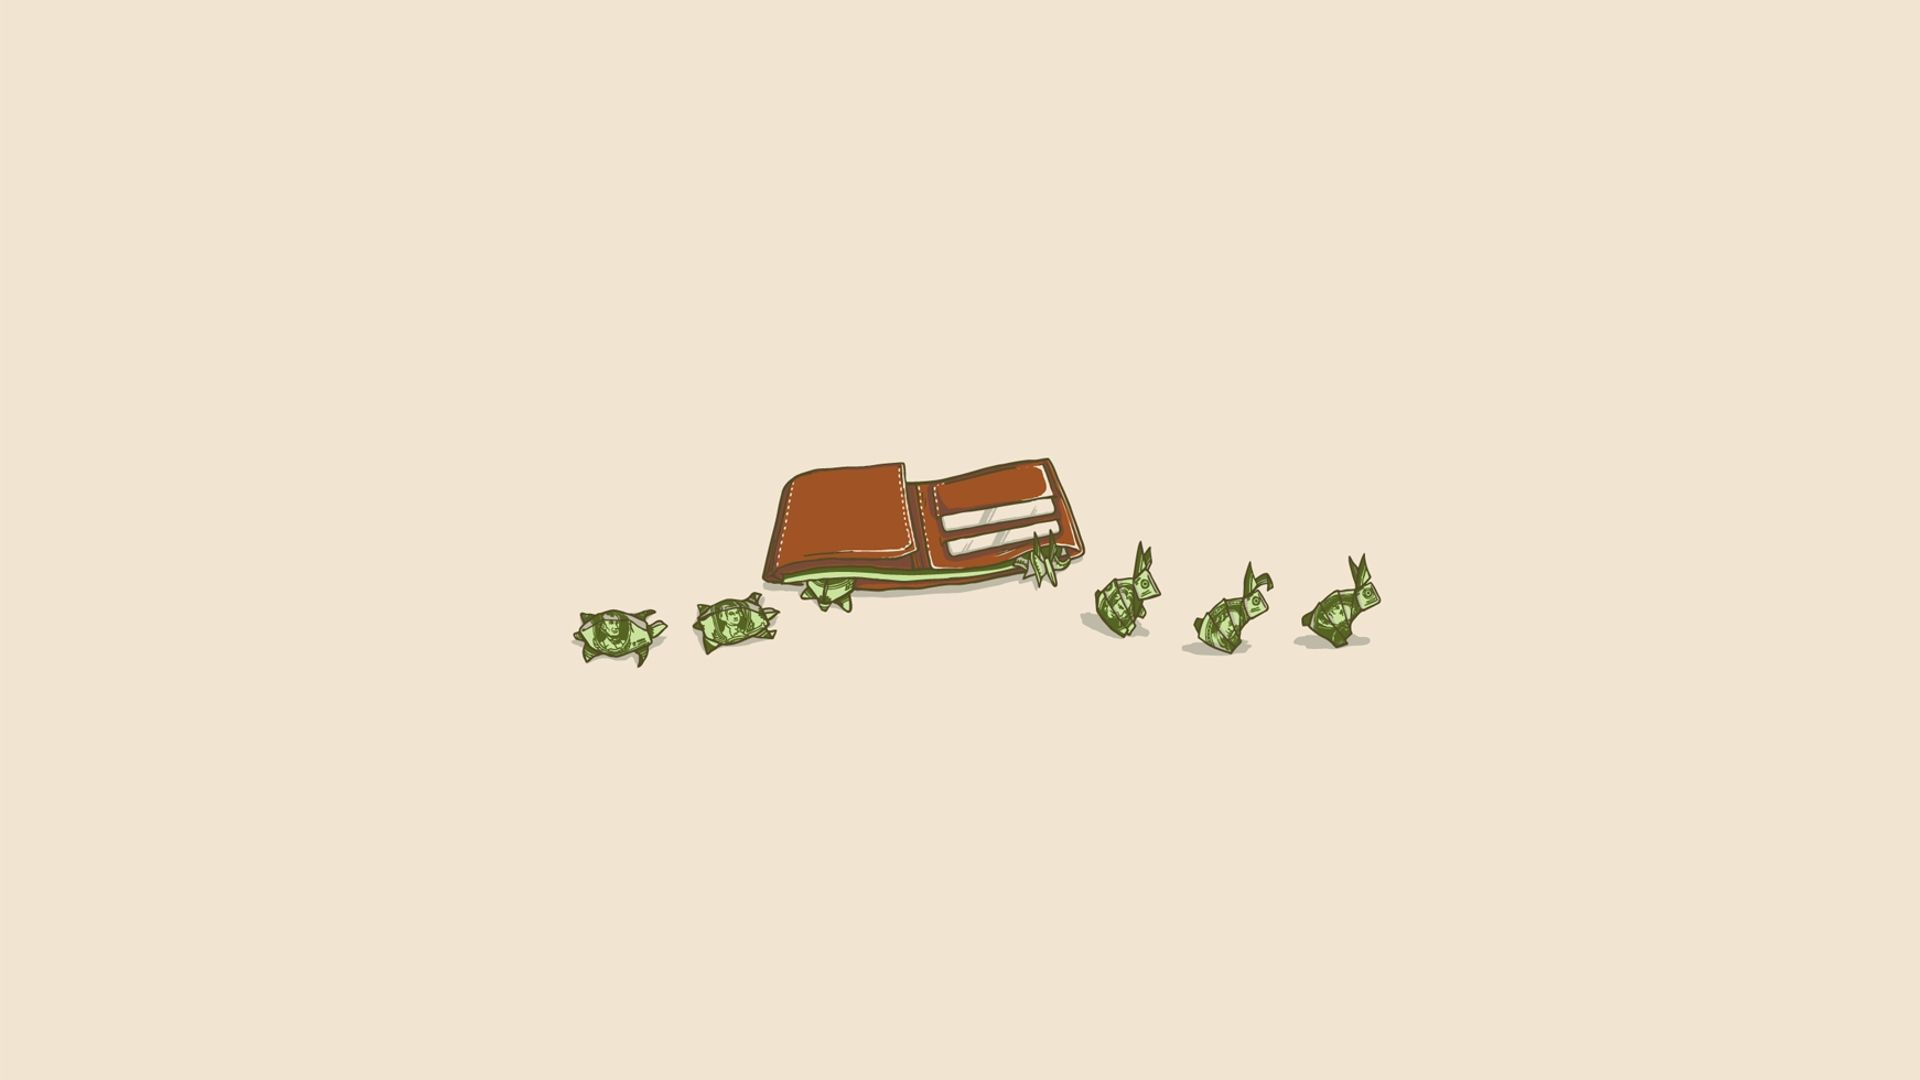 Dummy Money Turtles Bunnies Minimalist Desktop Wallpaper